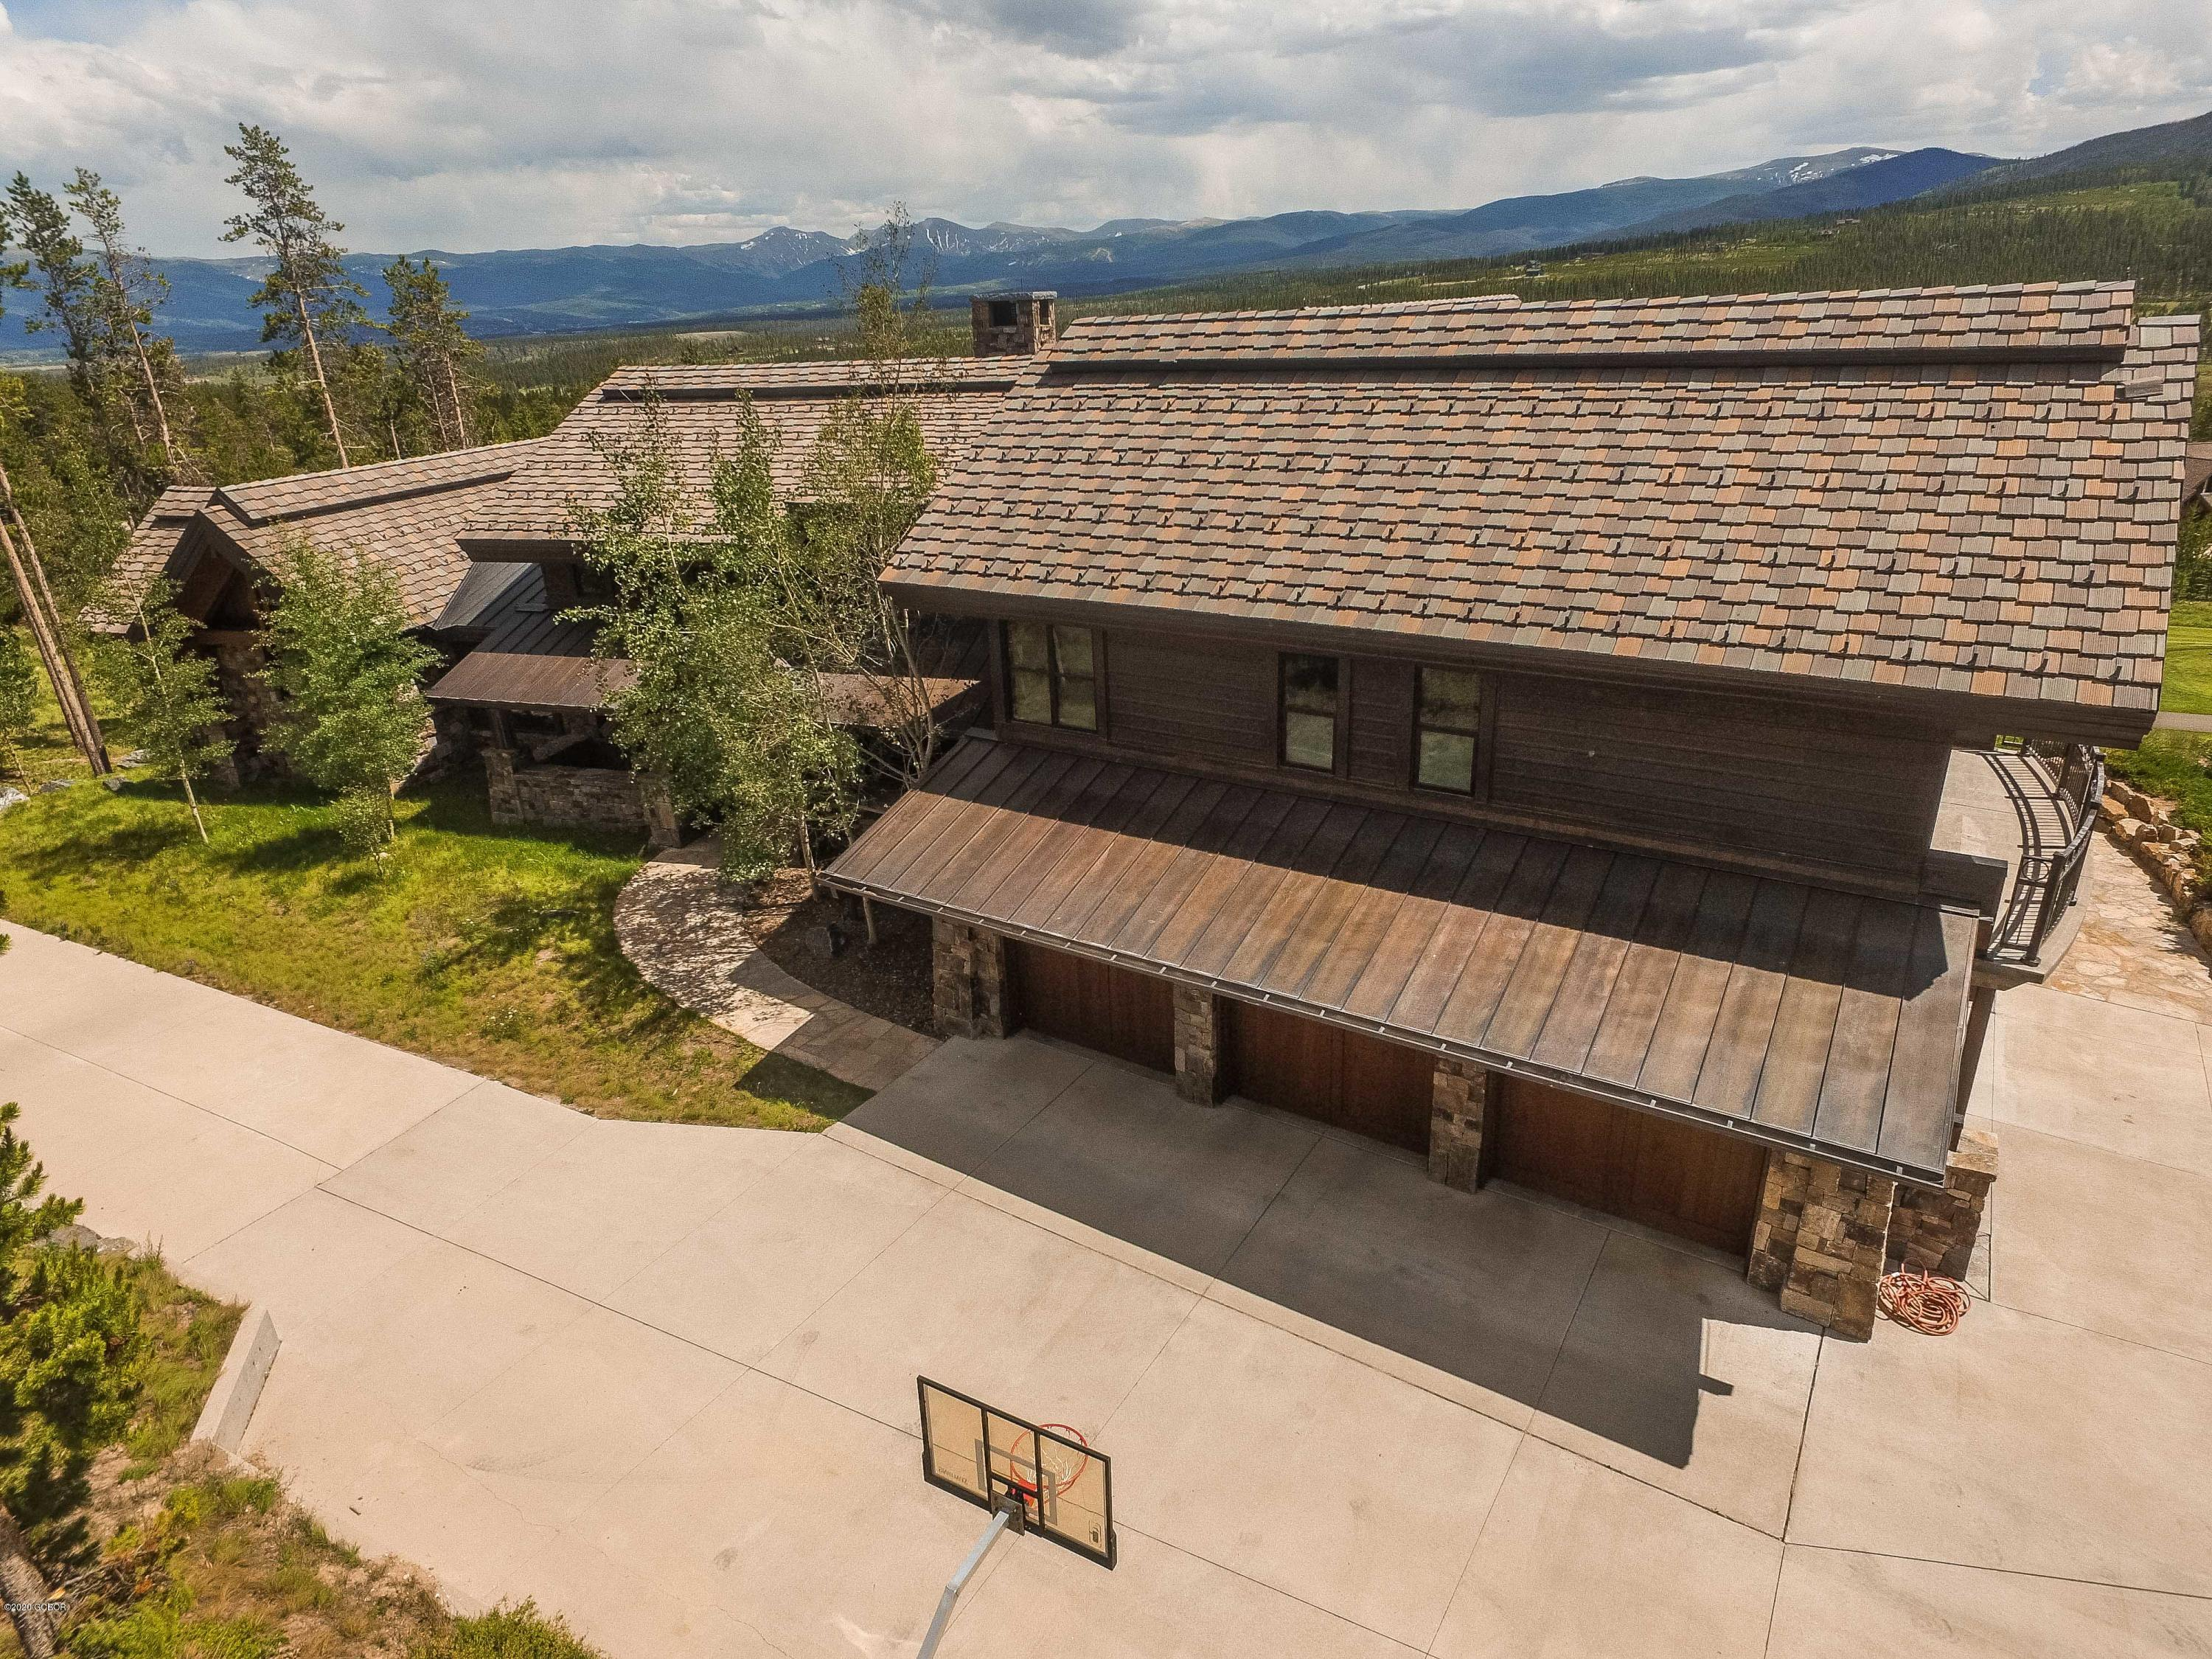 MLS# 20-898 - 104 - 107 Gcr 5114  #, Tabernash, CO 80478